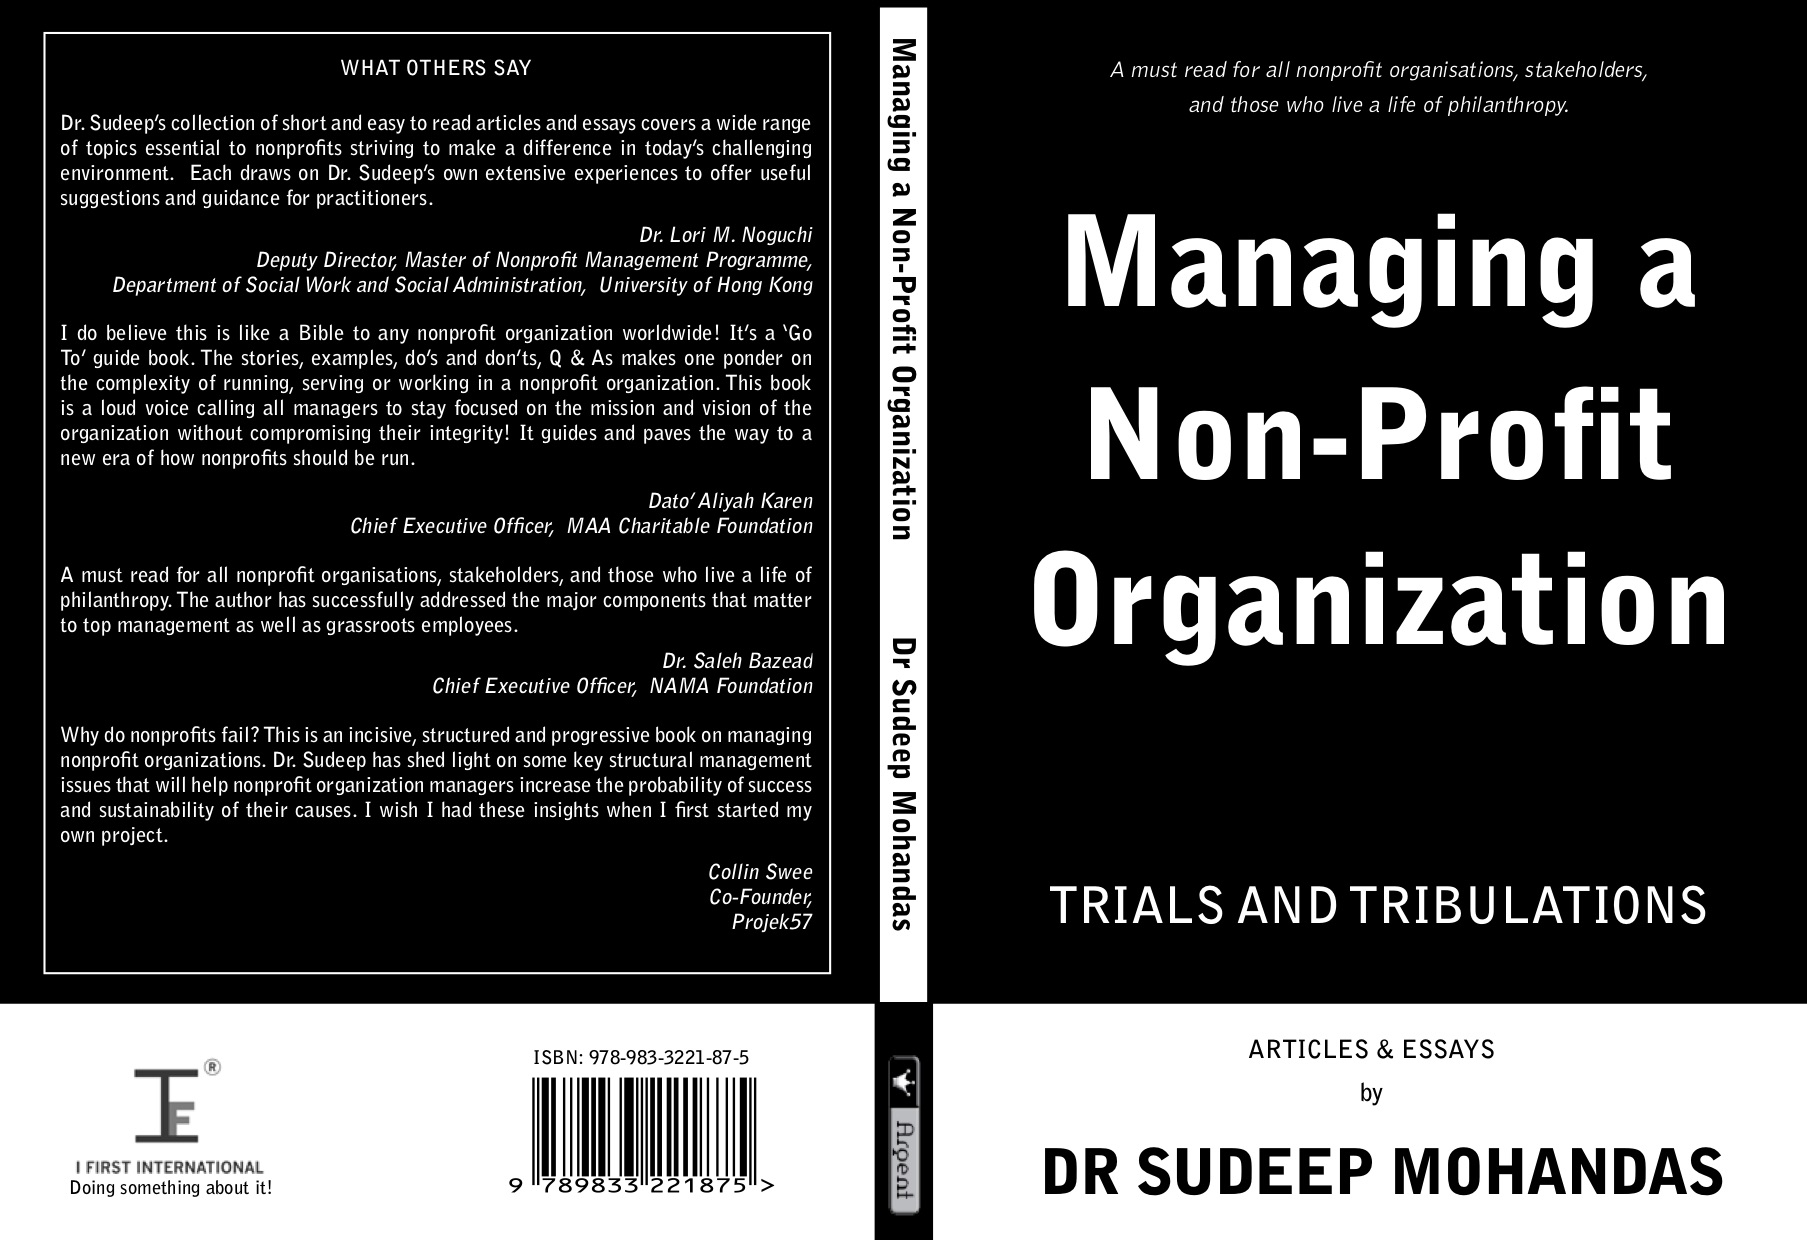 Published in 2018 by Silverfish Books. This book is a collection of articles published over the last five years through social media, blogs, magazines and mainstream newspapers. Much of what is written has been focussed to the nonprofit sector in particular to the Board and Management. The Author believes it is critical and necessary today for the governance of Nonprofits to be professional in their management and operations when dealing with the community, public and professionals at large. It is the author's intention to help the reader to benefit from the articles by having a better understanding to the issues and how to find a solution. The book covers the broad area of the nonprofit sector and organization where it tackles issues such as the cultural perspectives, the governance model and sustaining of an organization. He also looks into the intricacies of the Board and Management matters by touching on elements of the Founder's Syndrome, the biases of hiring and succession planning. Finally there is a section on the staff and there is highlights the emerging issues of career opportunities, capacity building and multitasking. The book has been reviewed by nine experts in the field of Nonprofits from Hong Kong, Indonesia and Malaysia.